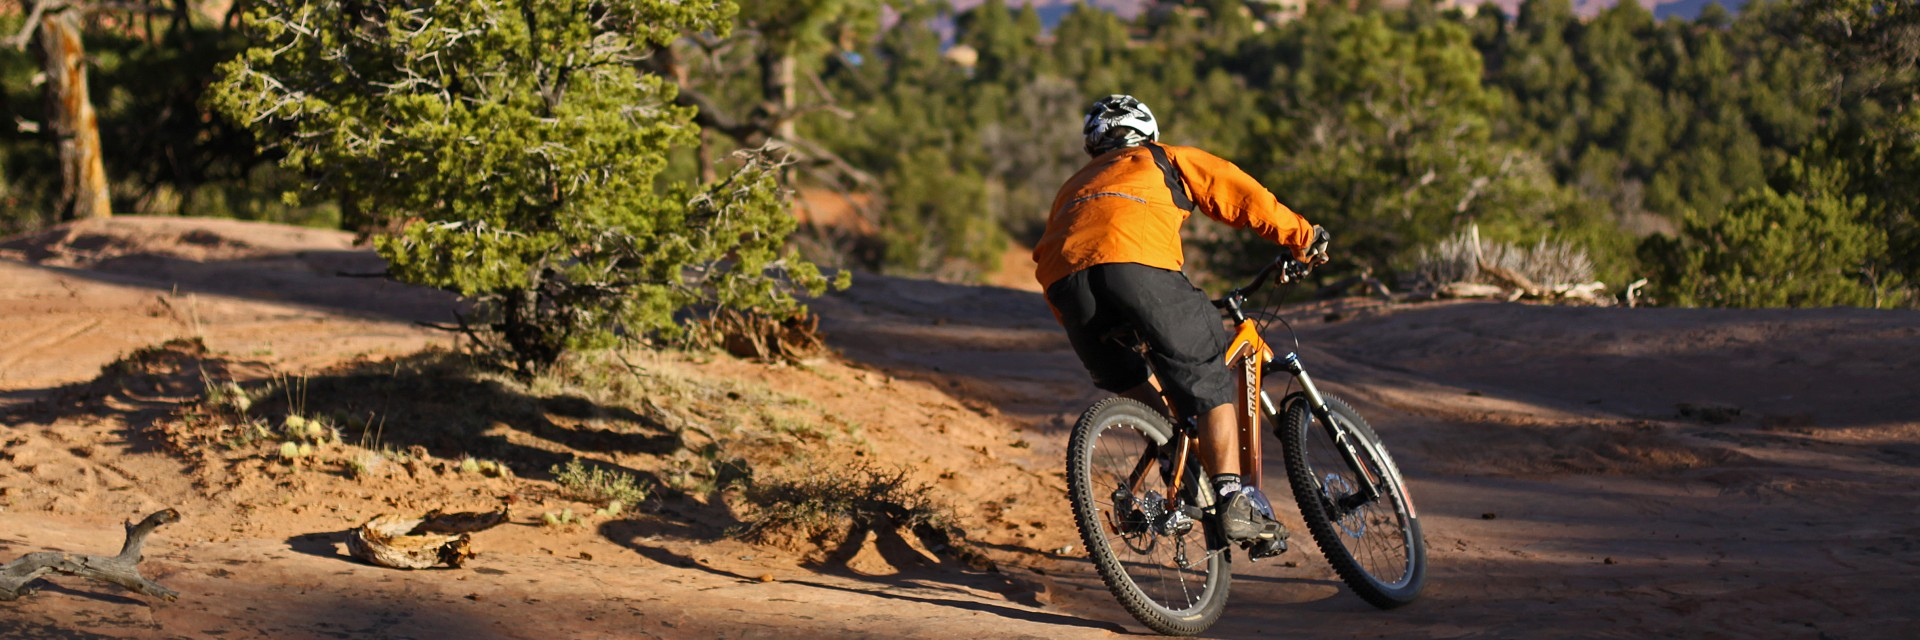 A downhill specialist carves a fast turn on the Upper Porcupine Singletrack section of The Whole Enchilada guided tour east of Moab, UT